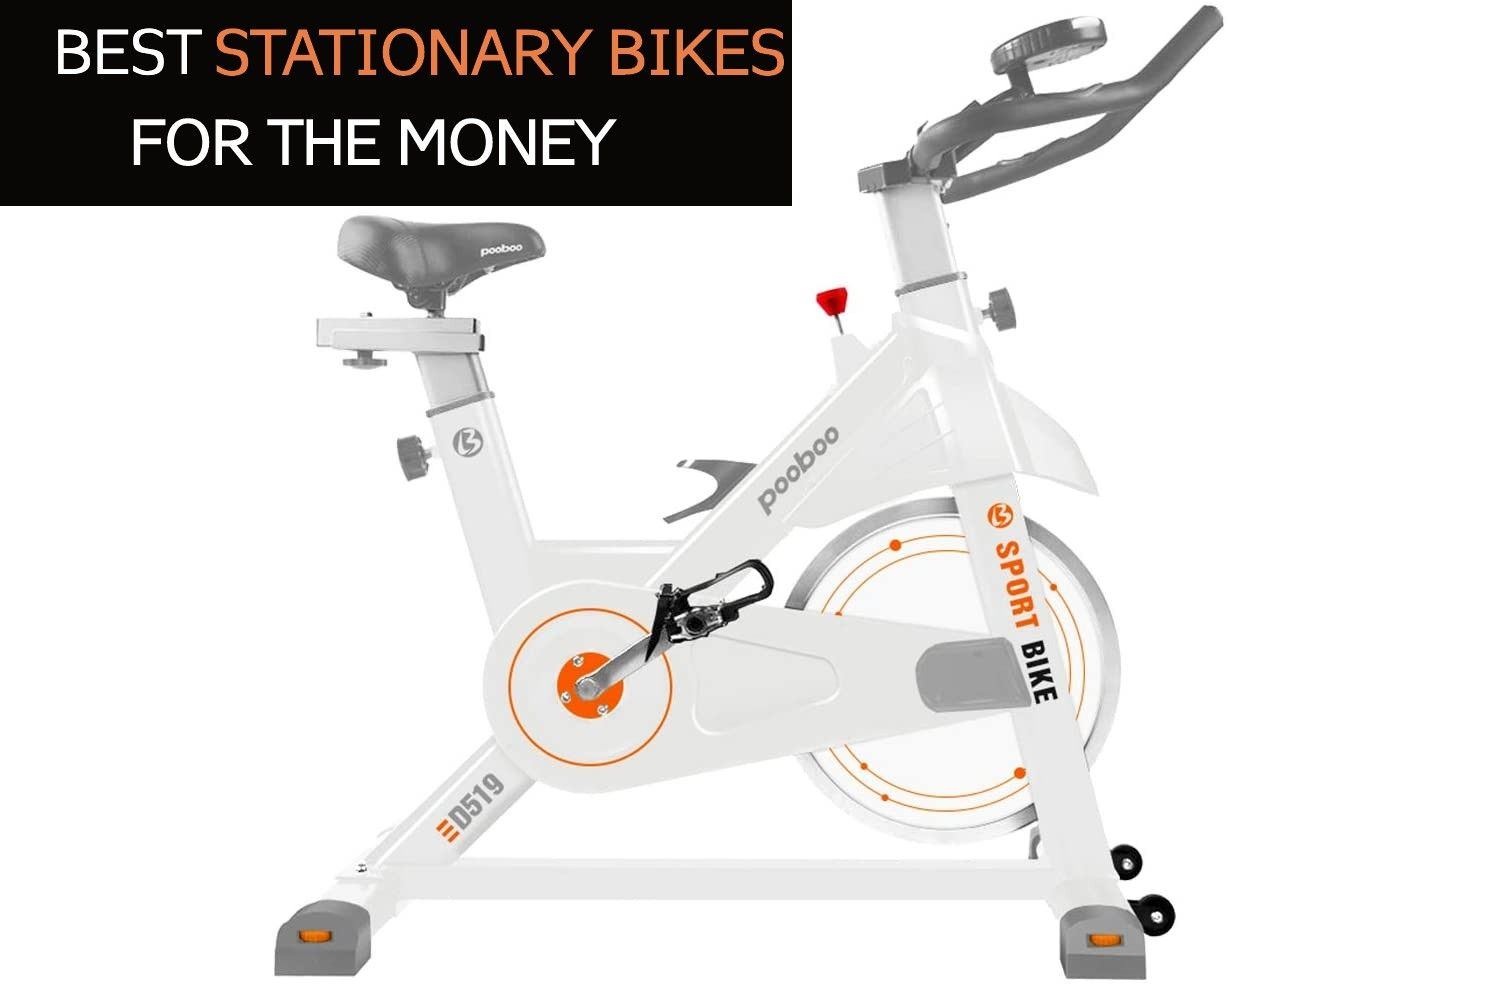 10 Best Stationary Bikes For The Money [Weight Lost Money]